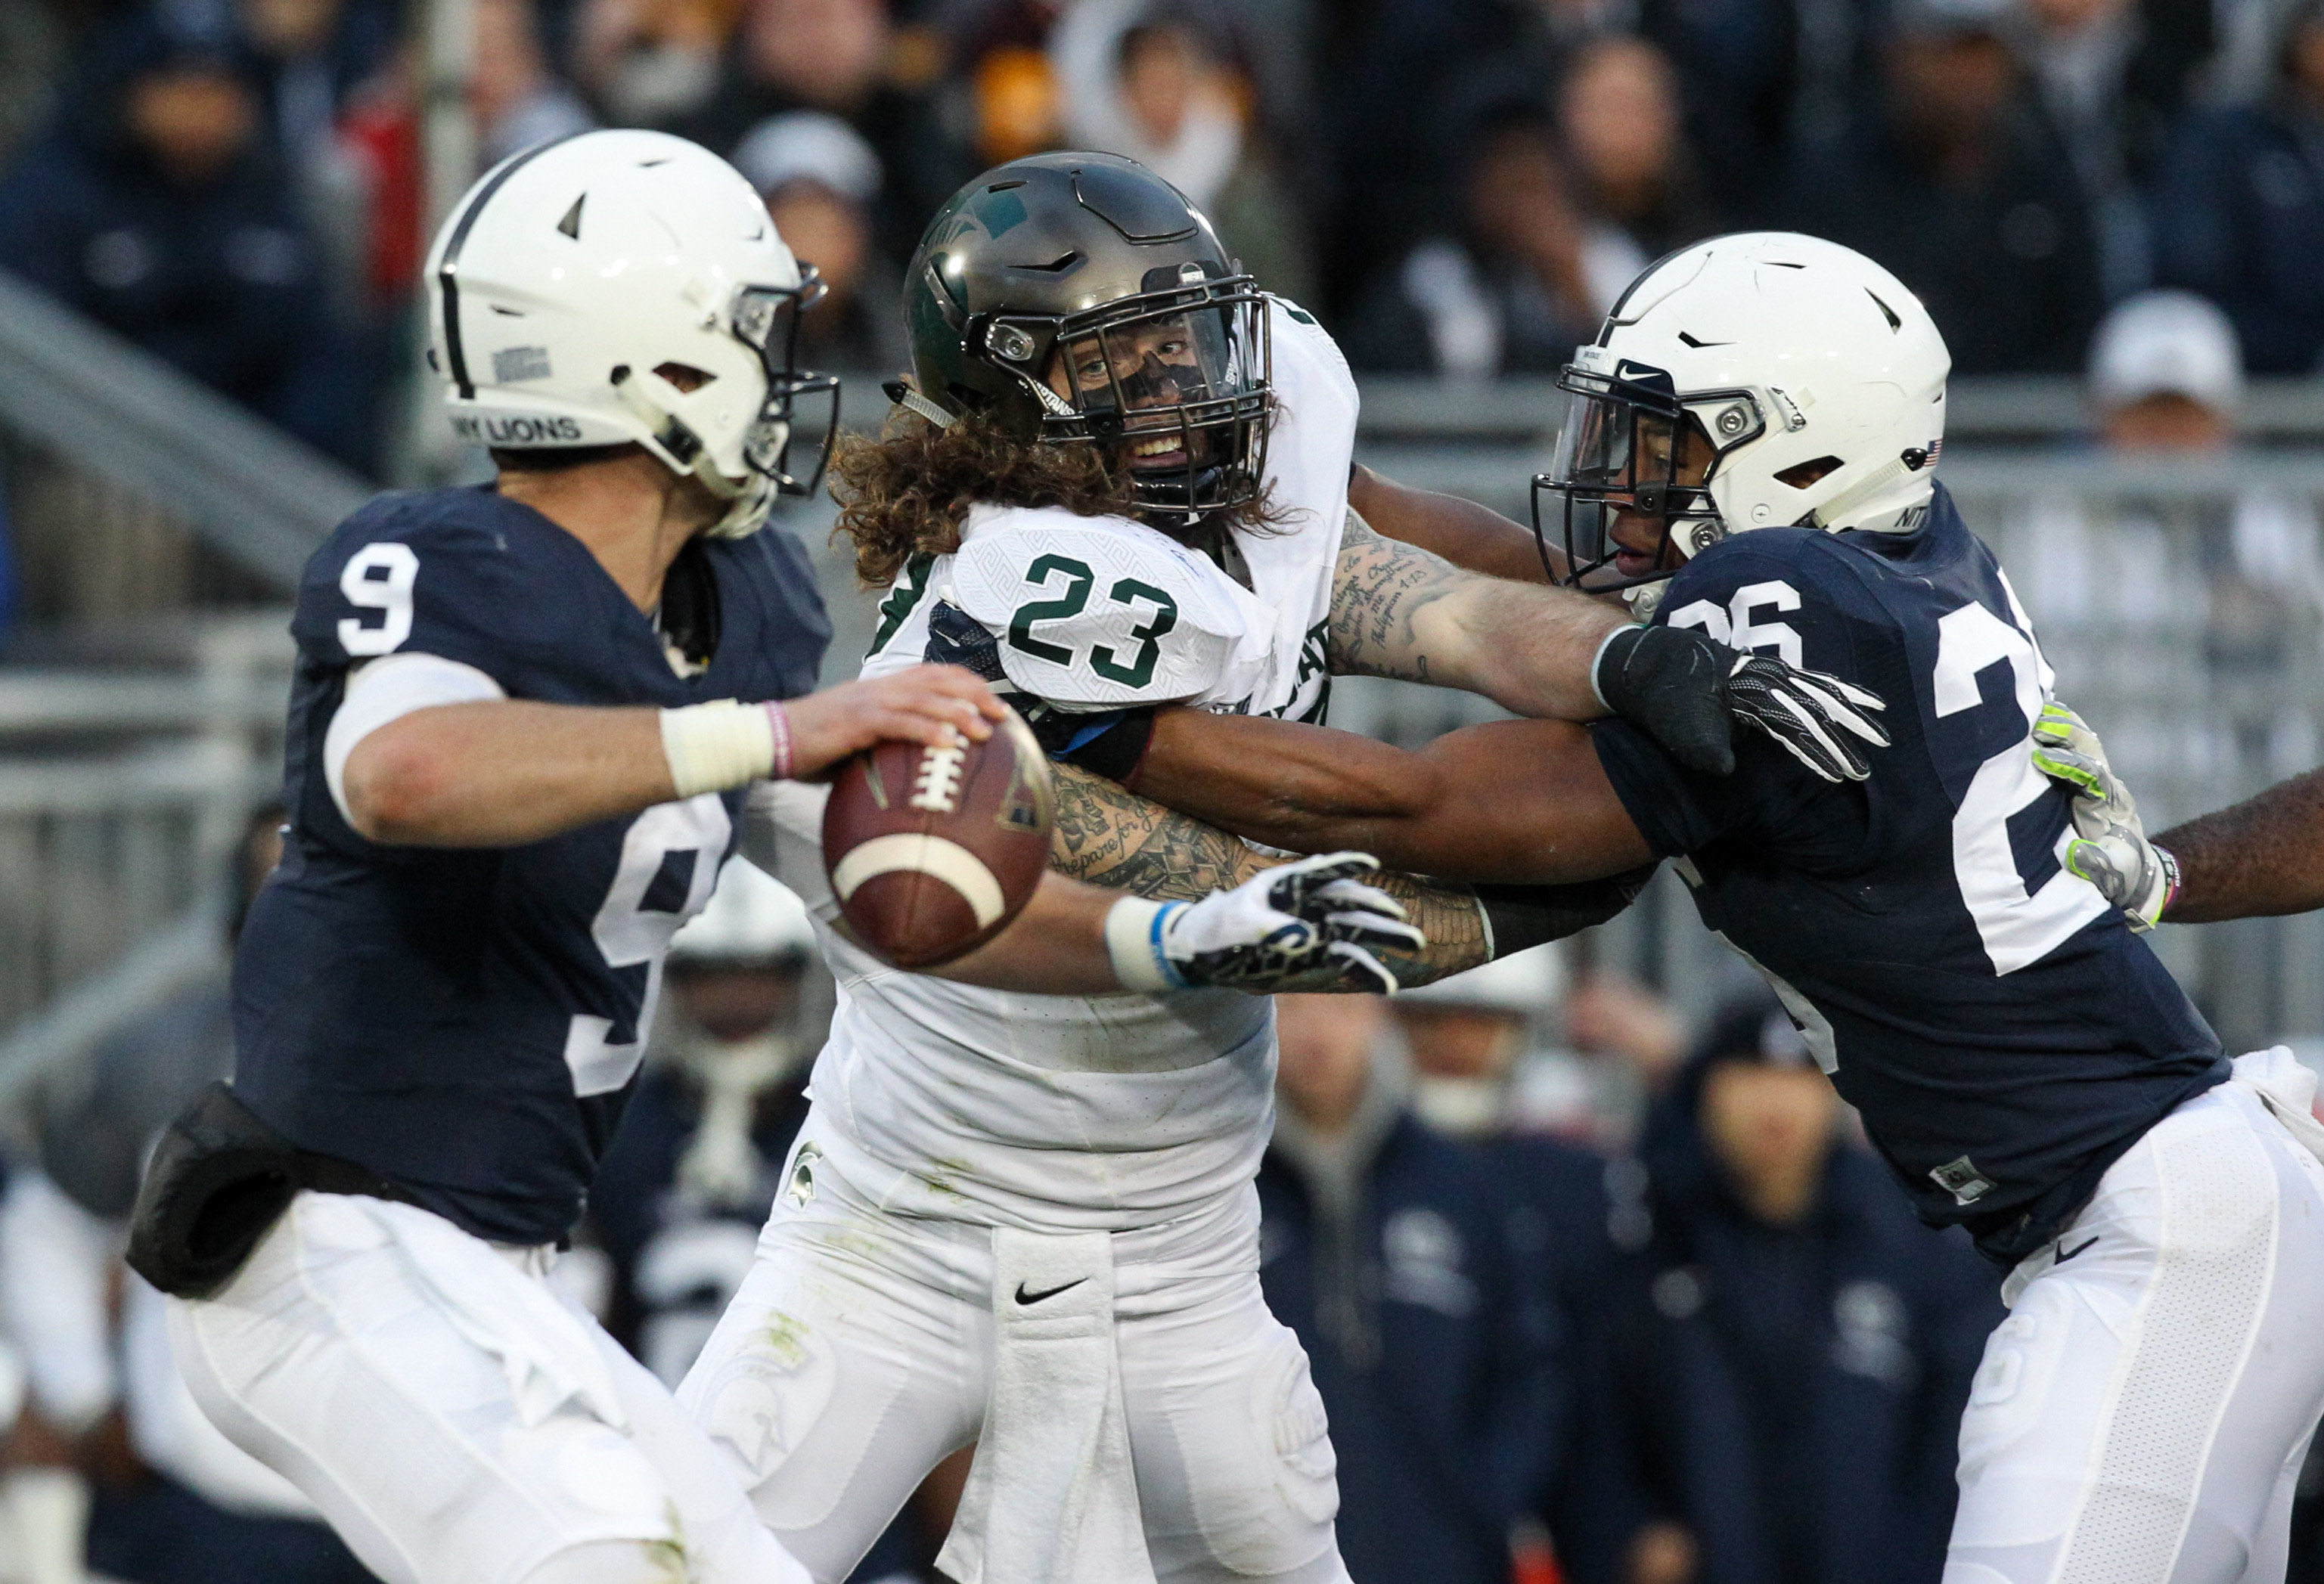 9718976-ncaa-football-michigan-state-at-penn-state